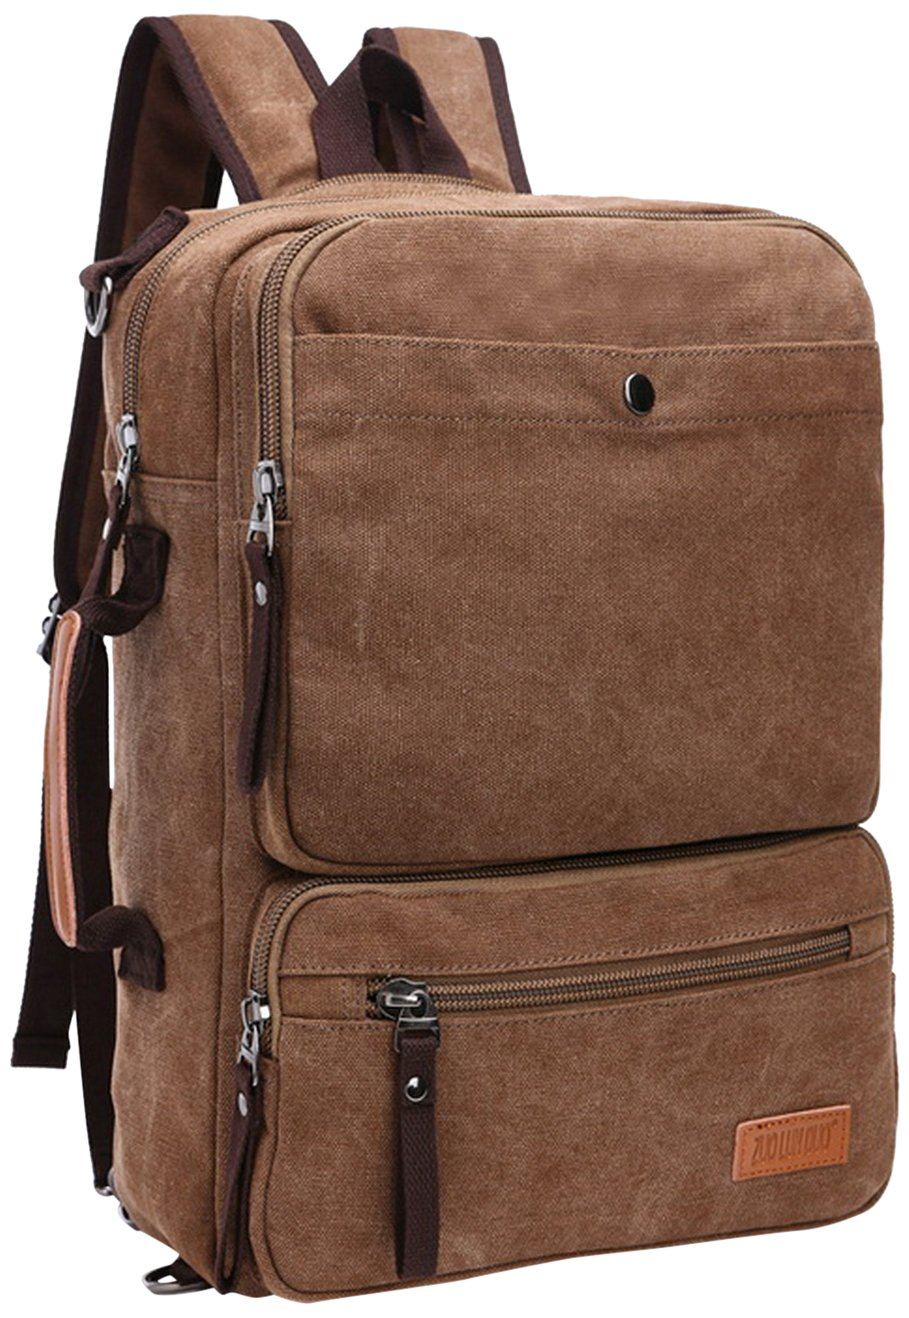 durable service M.G. mu8178 Canvas Backpack, Coffee